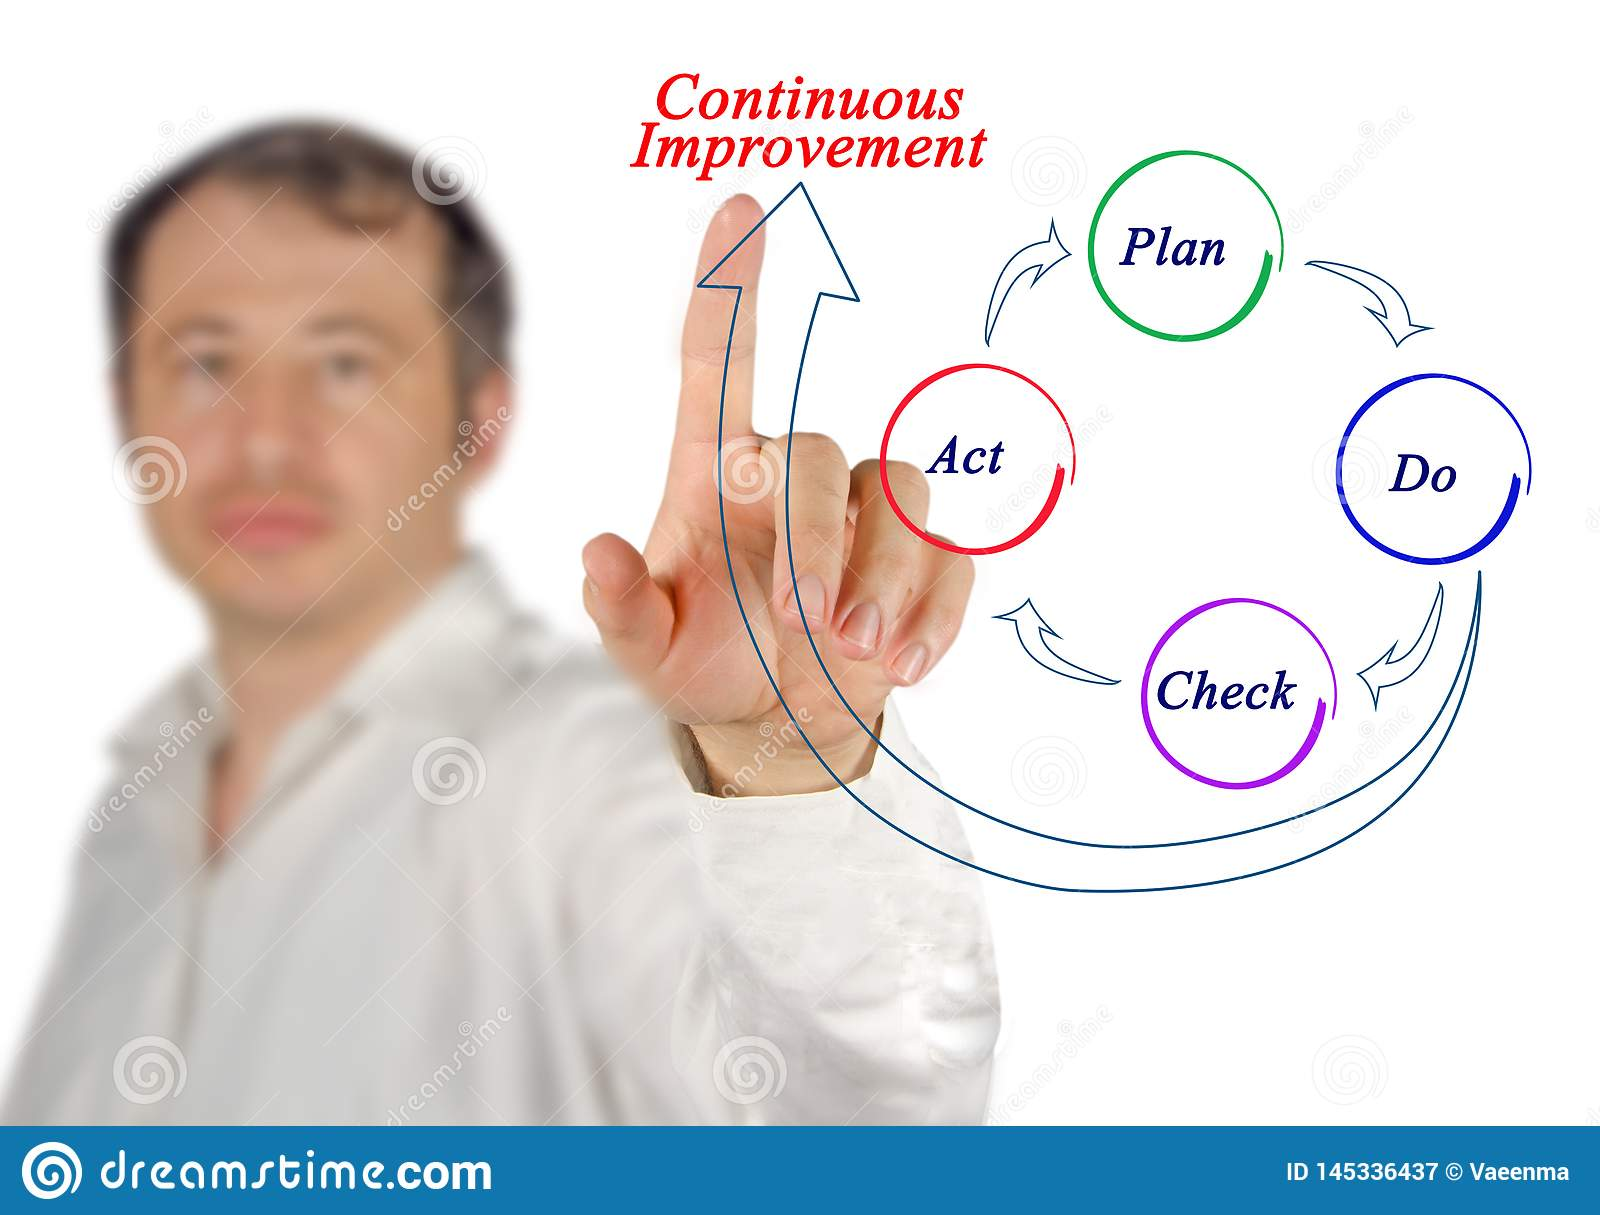 Process of Continuous Improvement